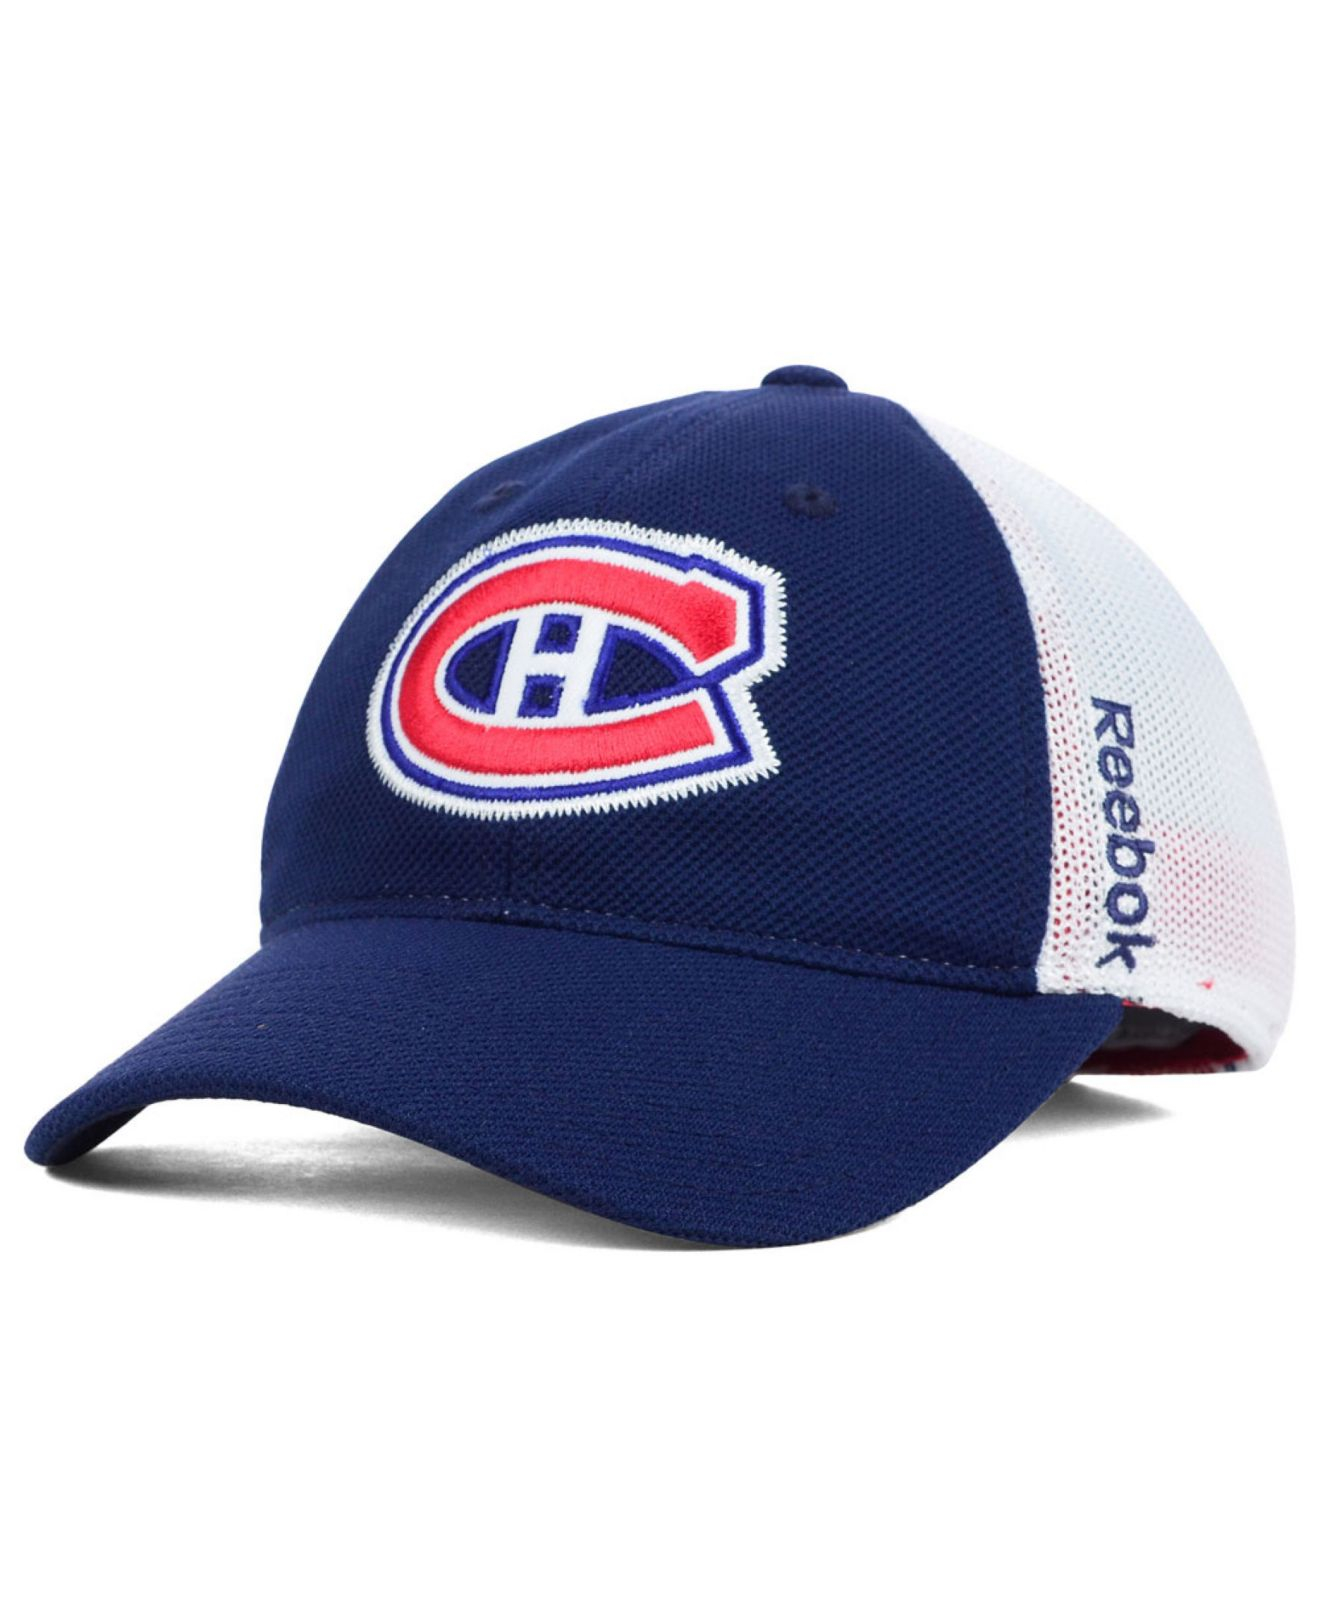 4be67fa5427 Lyst - Reebok Montreal Canadiens Stretch-Fit Cap in Blue for Men